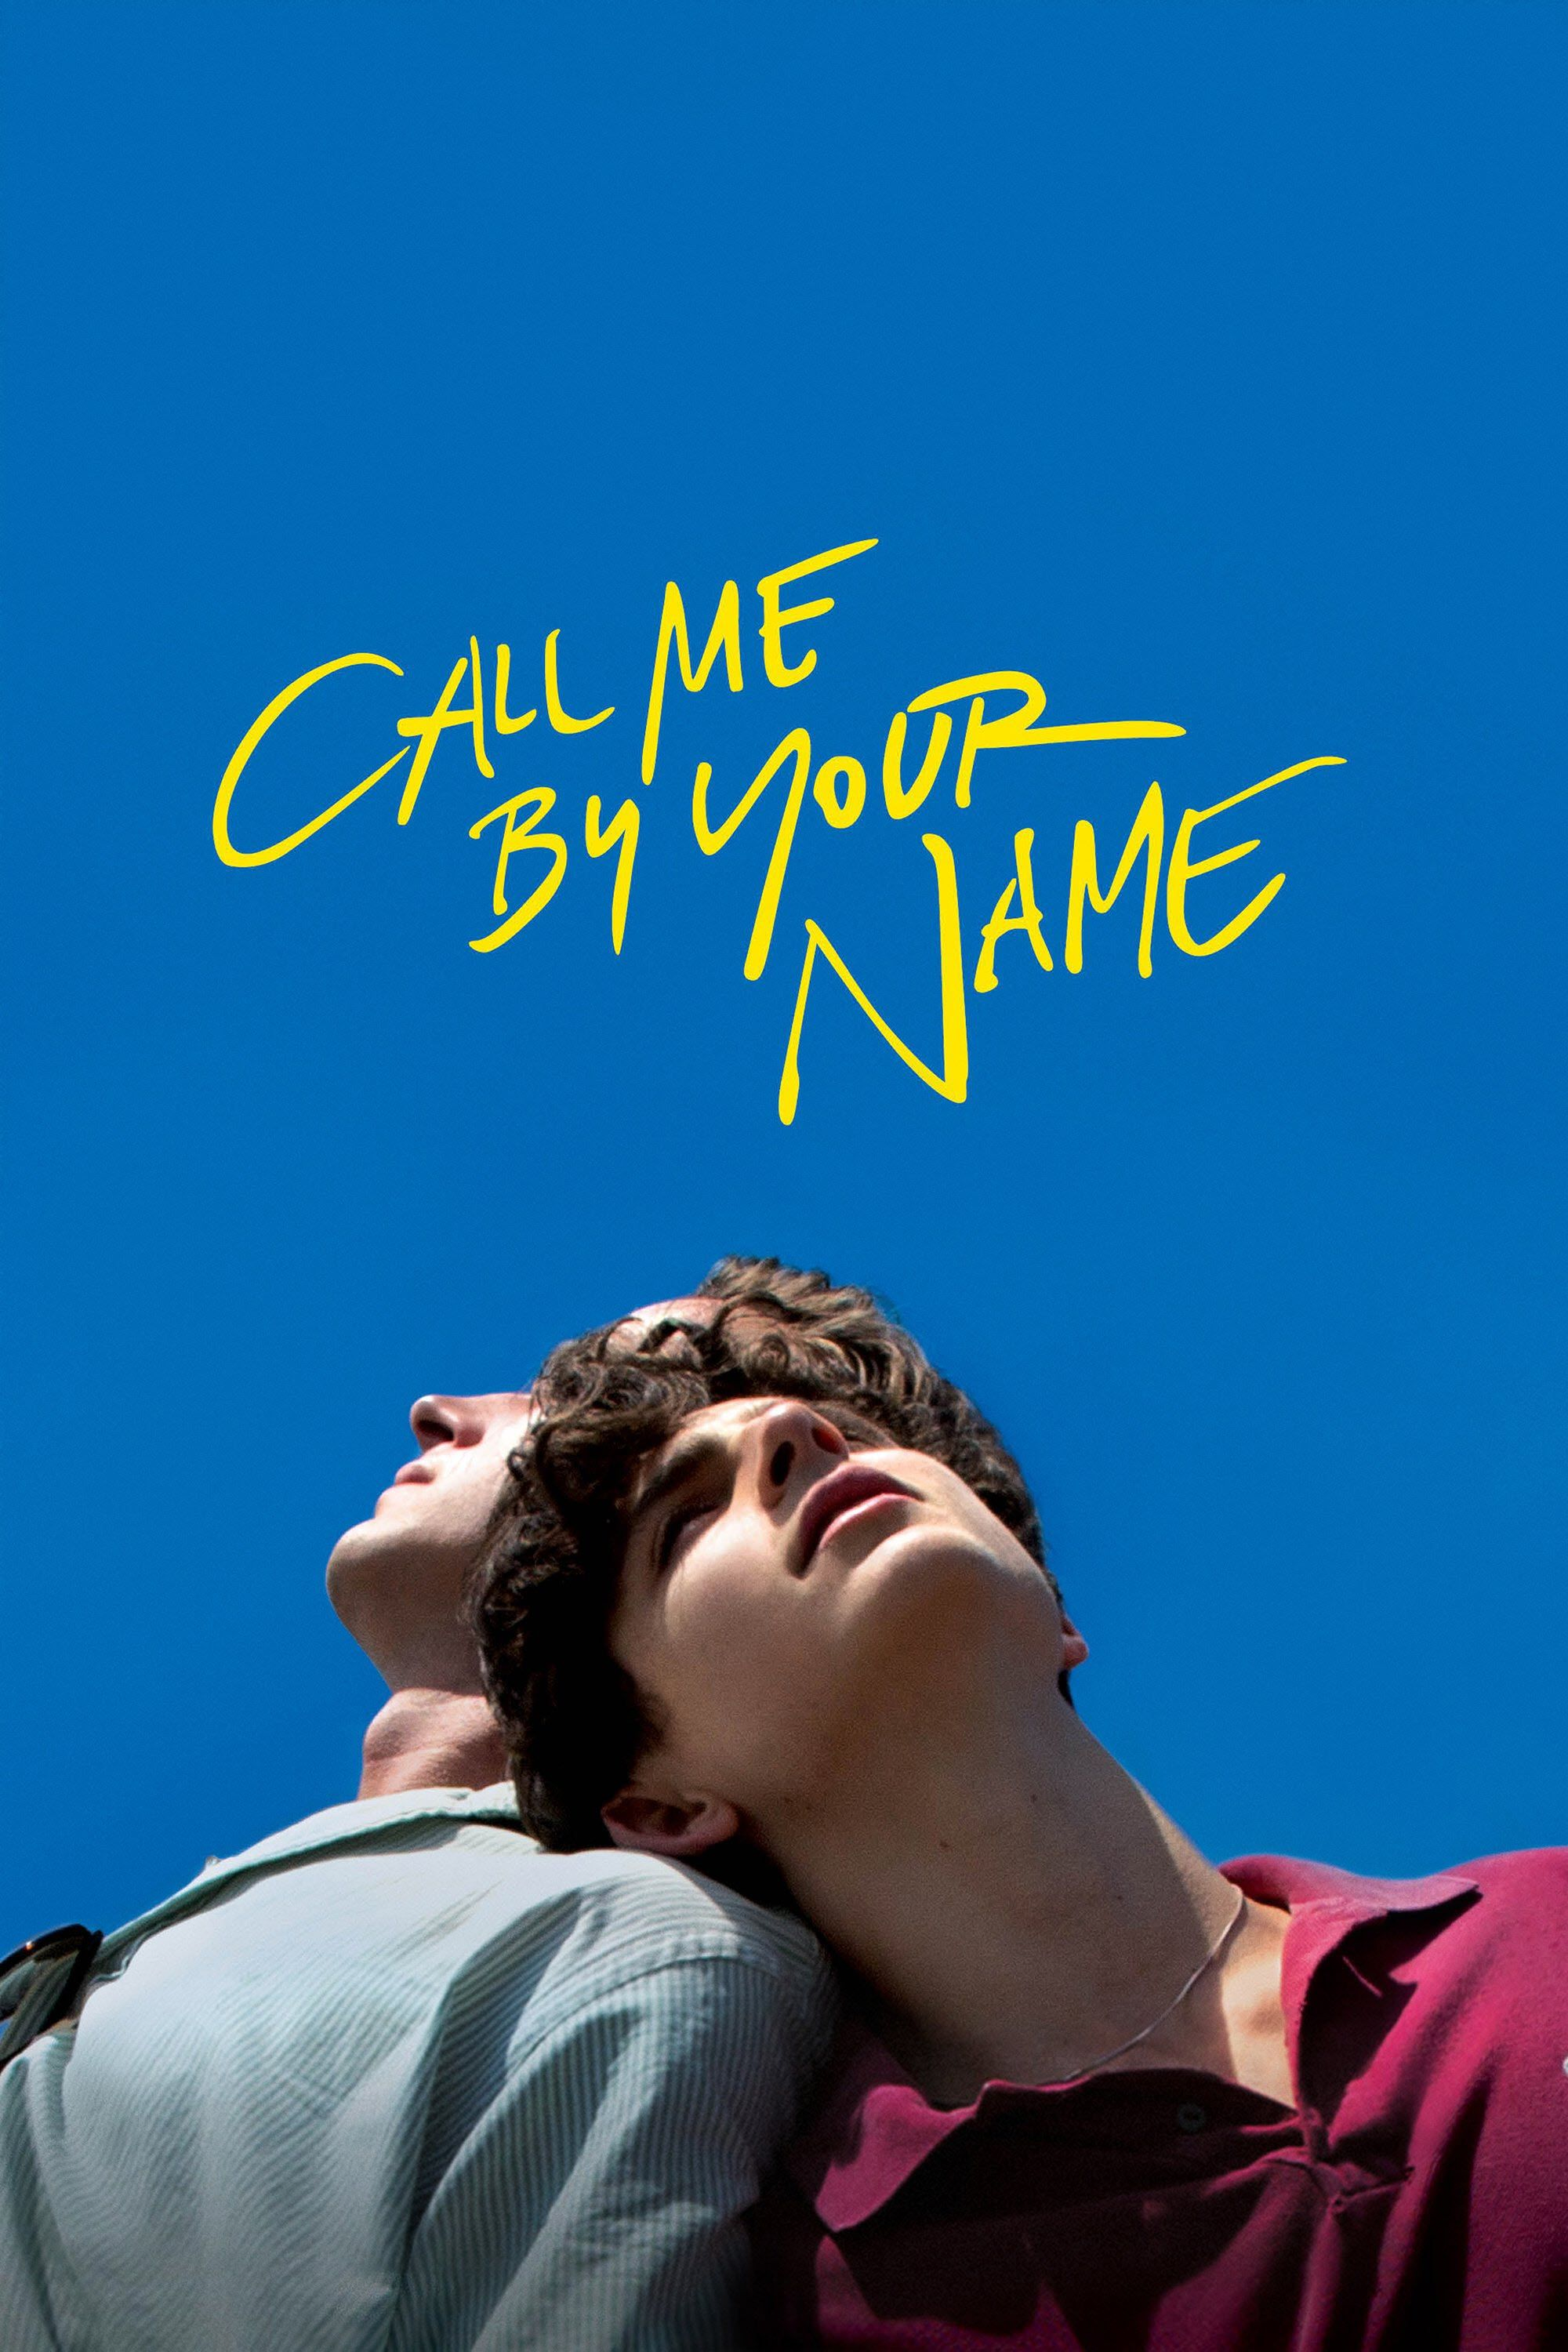 Call Me By Your Name Your Name Movie Your Name Full Movie Streaming Movies Free